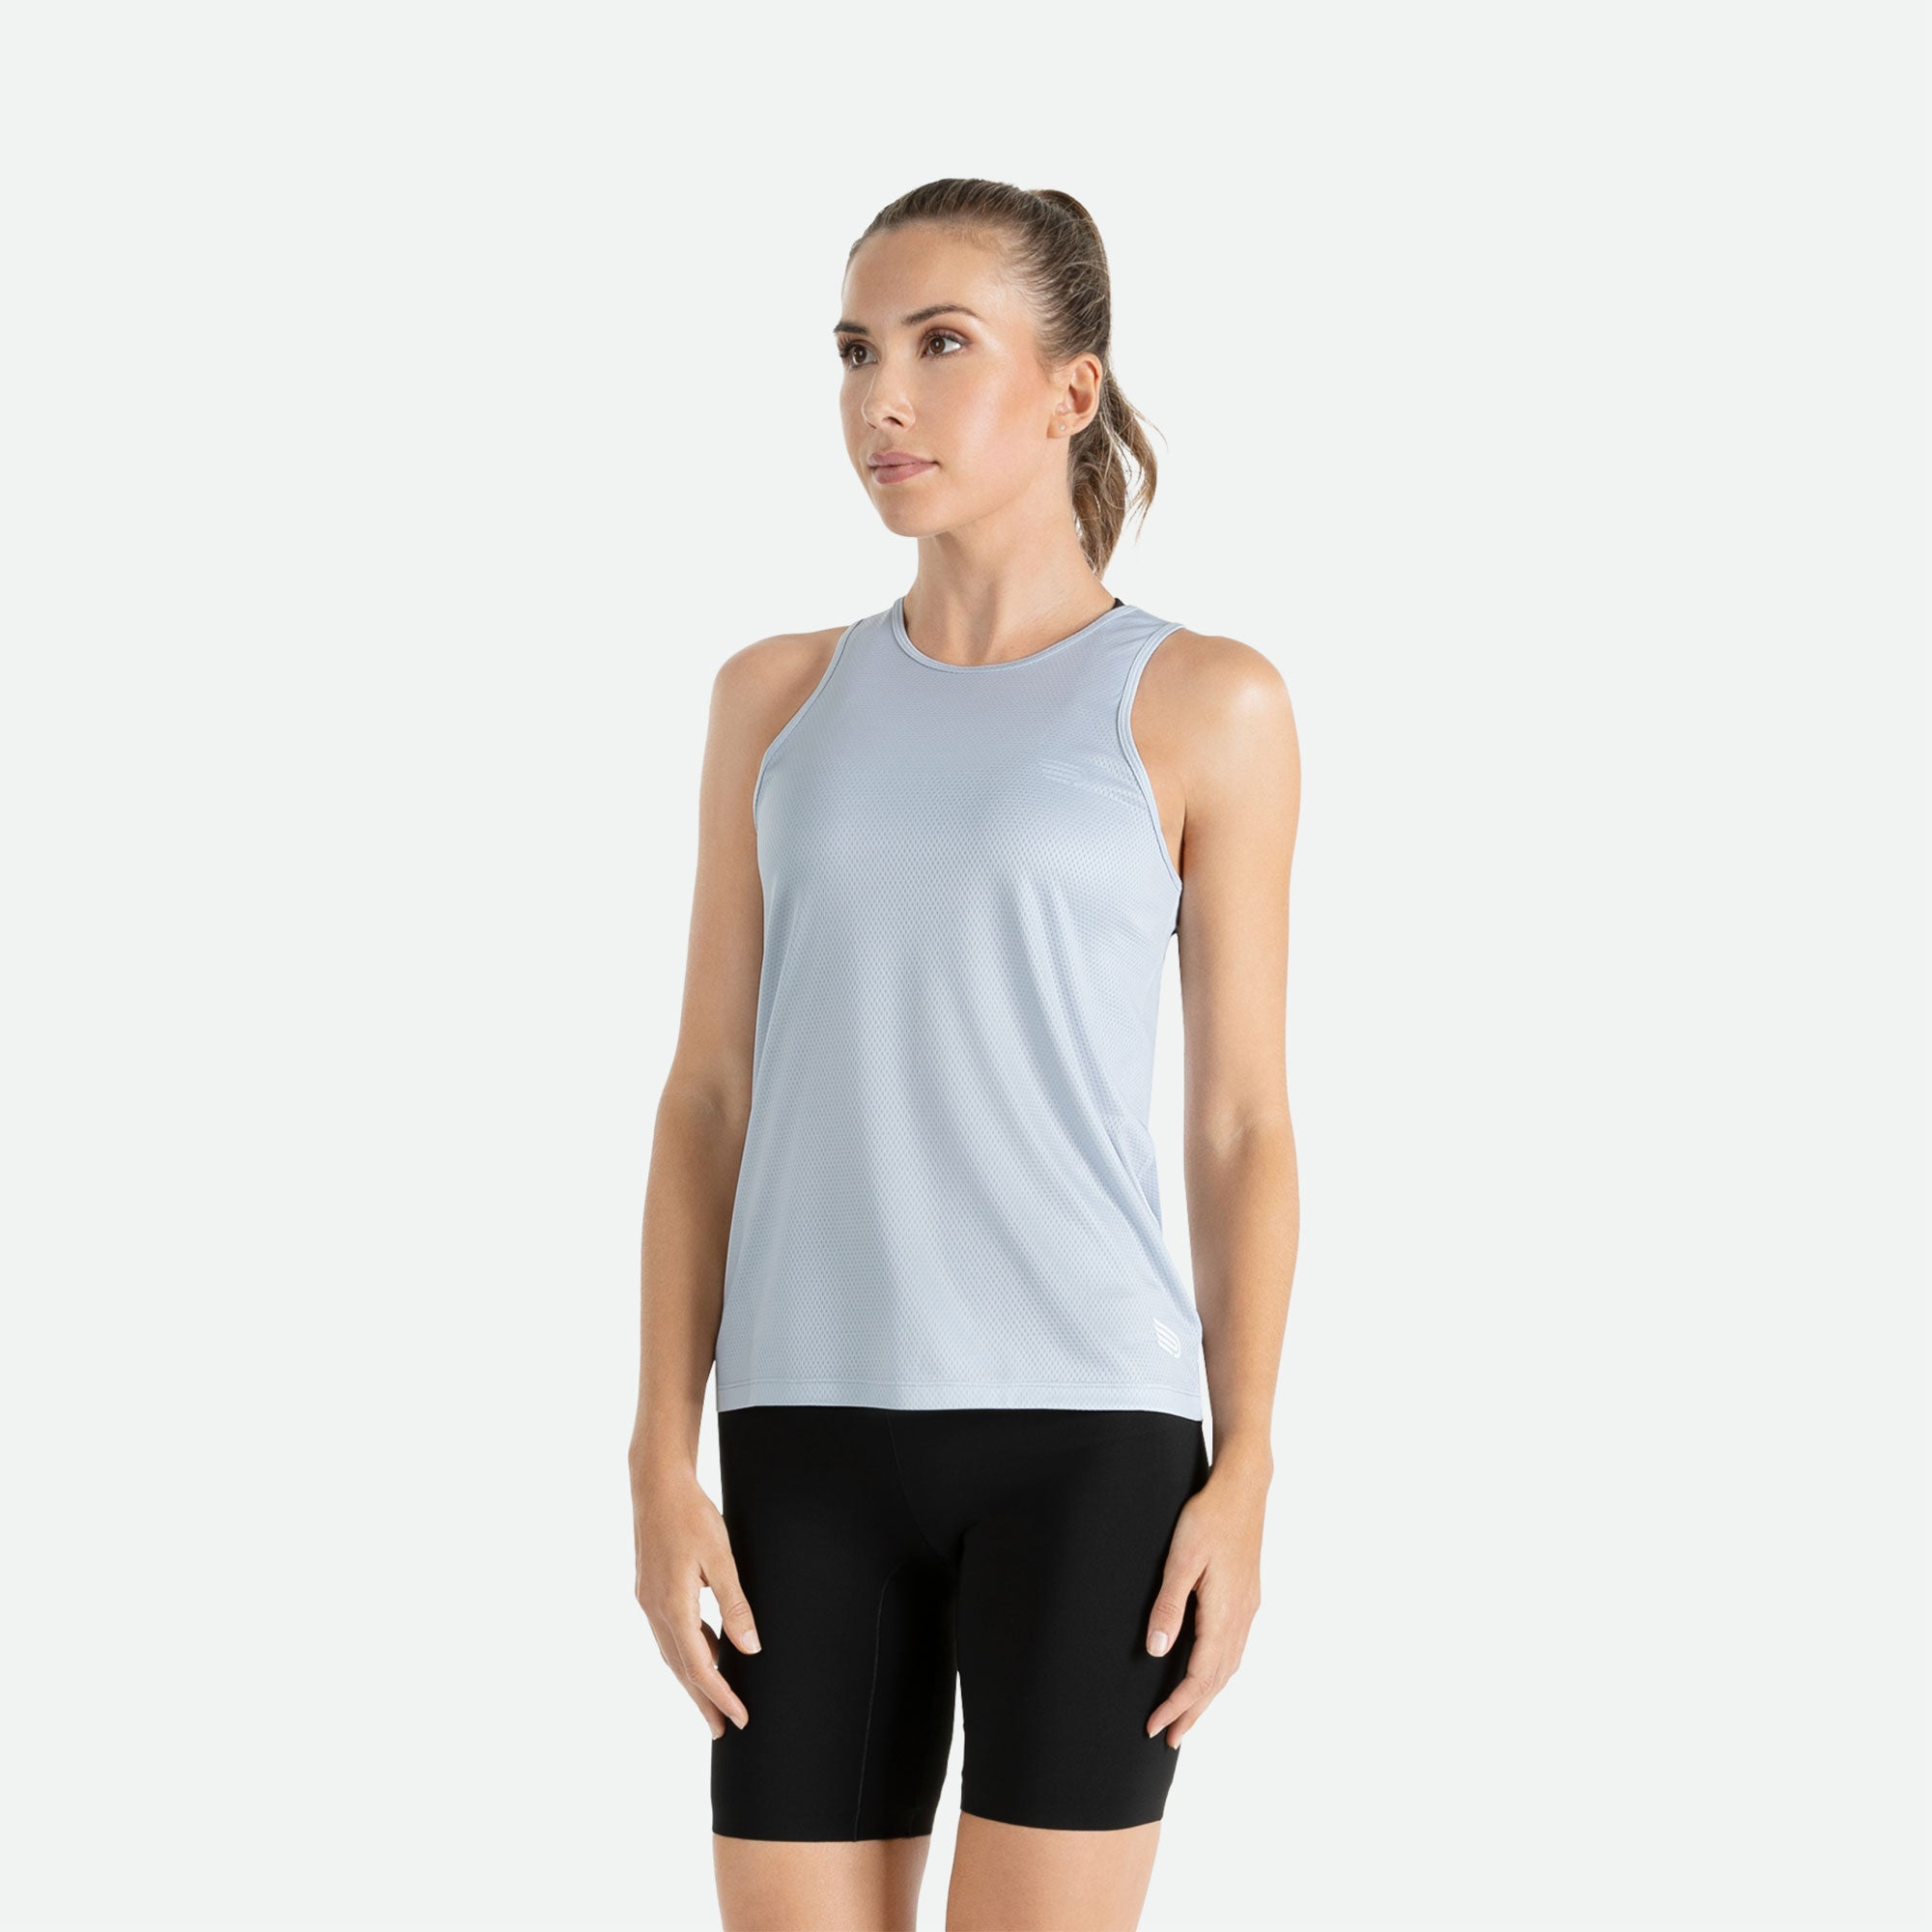 Our Pressio women's light grey Hāpai wideback singlet features EcoTECH MF fabric which has dual filament recycled polyester yarns from Unifi for superior moisture control to keep you dry.